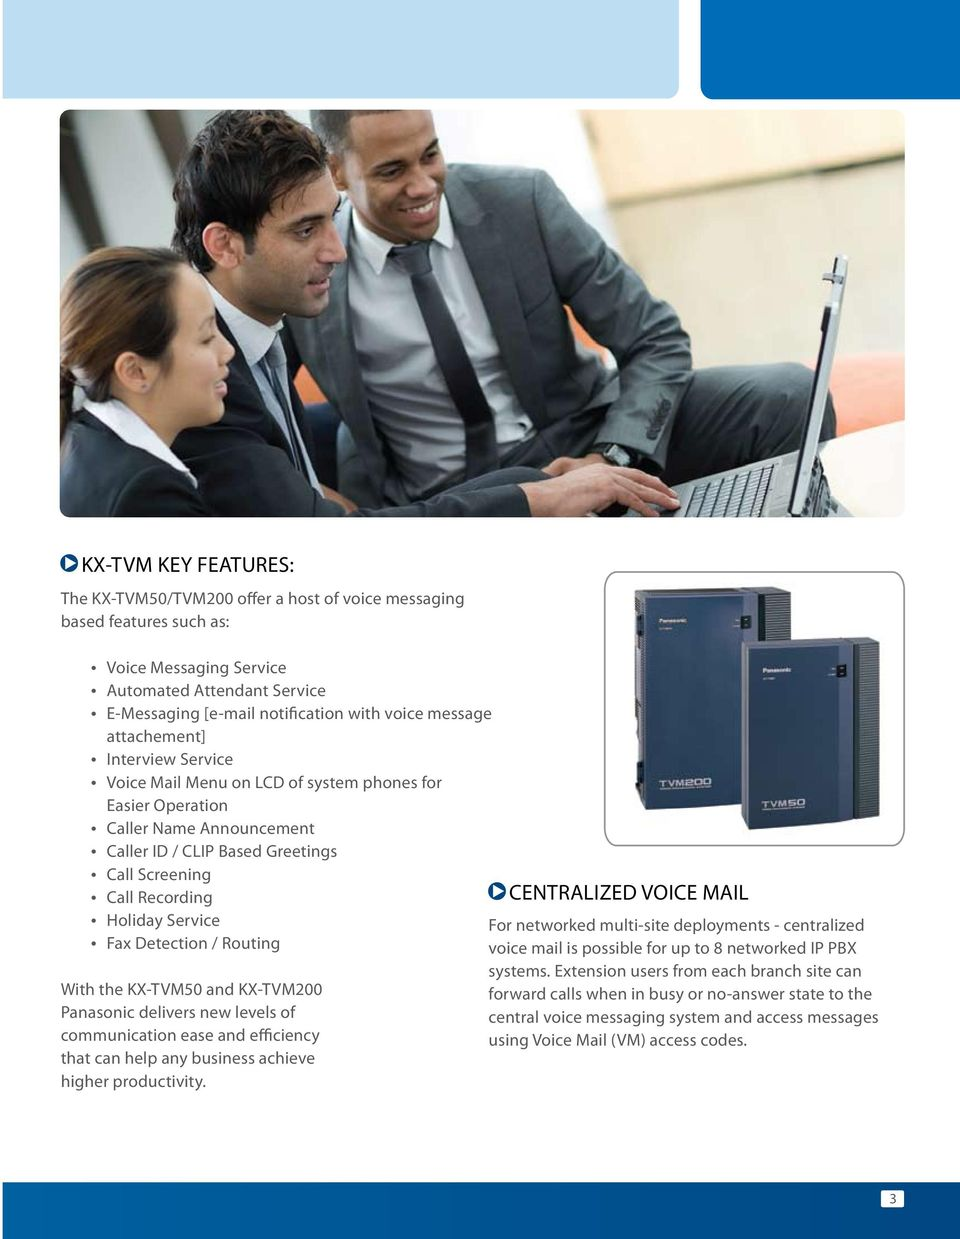 Service Fax Detection / Routing With the KX-TVM50 and KX-TVM200 Panasonic delivers new levels of communication ease and efficiency that can help any business achieve higher productivity.